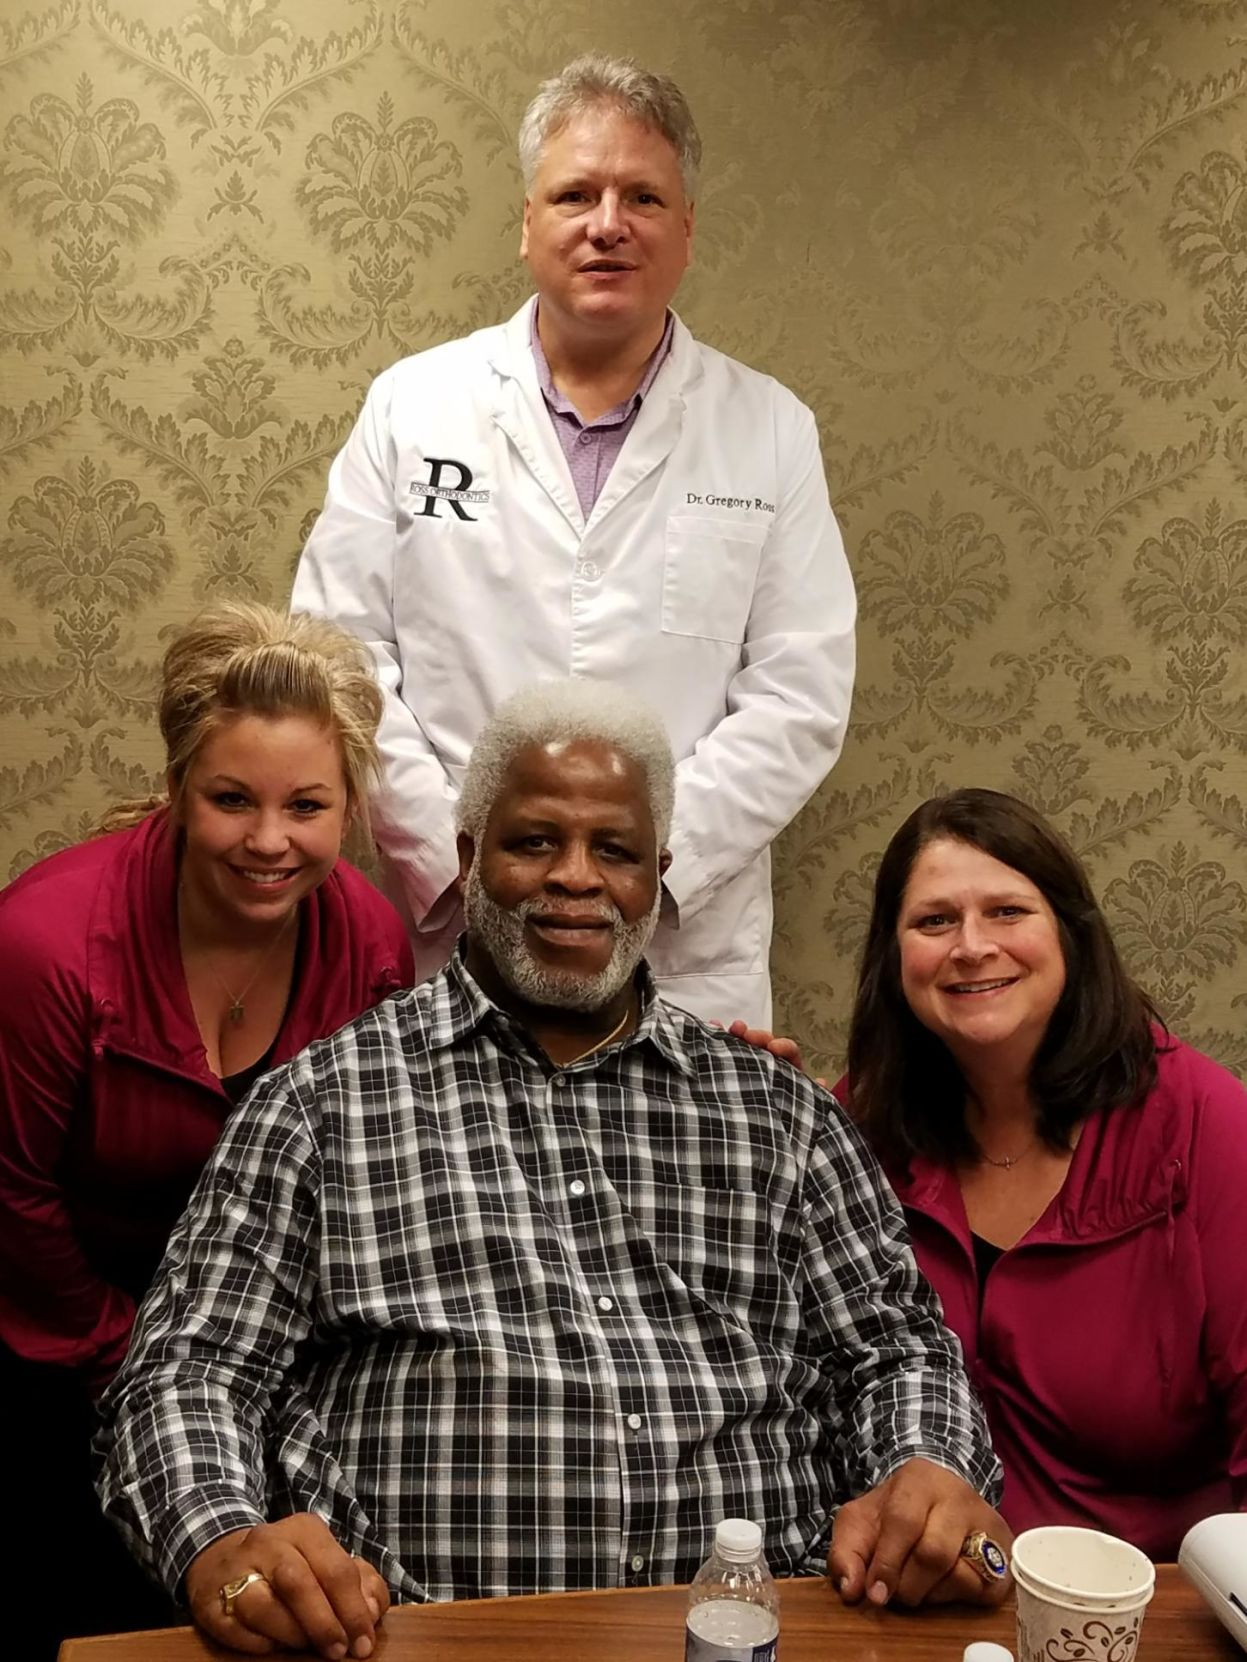 Dr. Ross w/ Earl Campbell